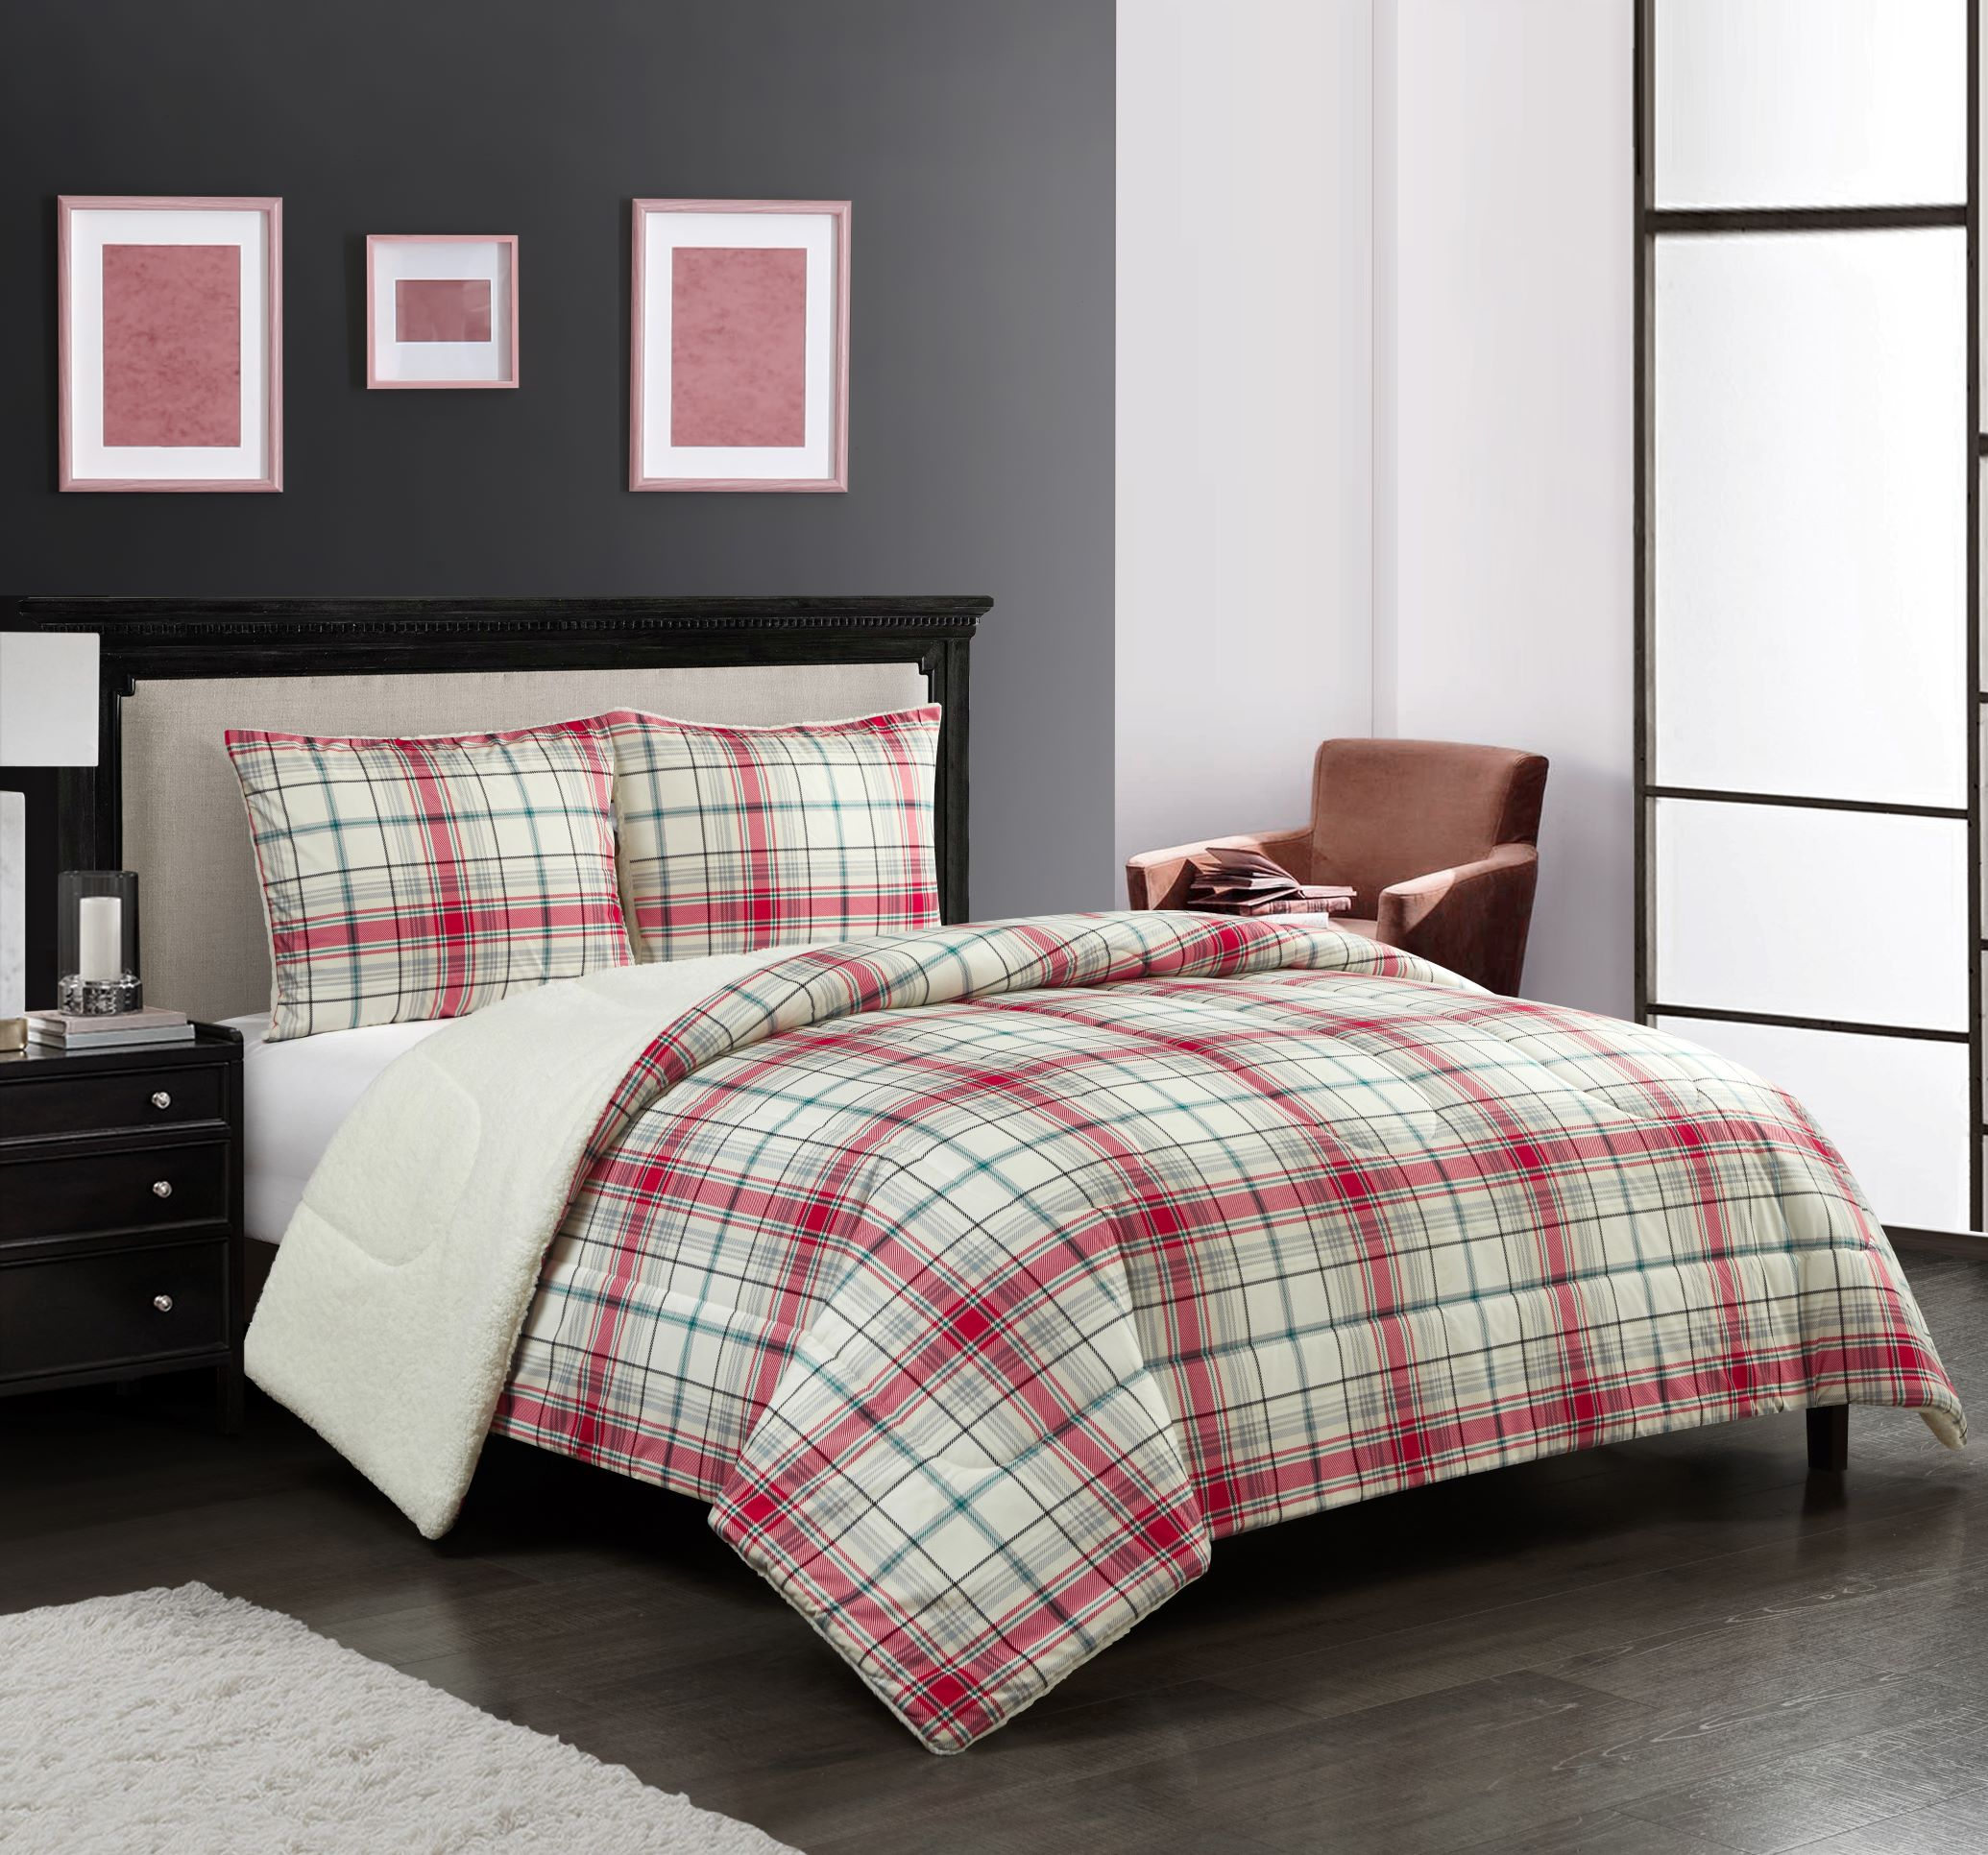 Mainstays Cozy Flannel Reverse To Super Soft Sherpa 3 Piece Comforter Set Full Queen Red And Green Plaid Walmart Com Walmart Com